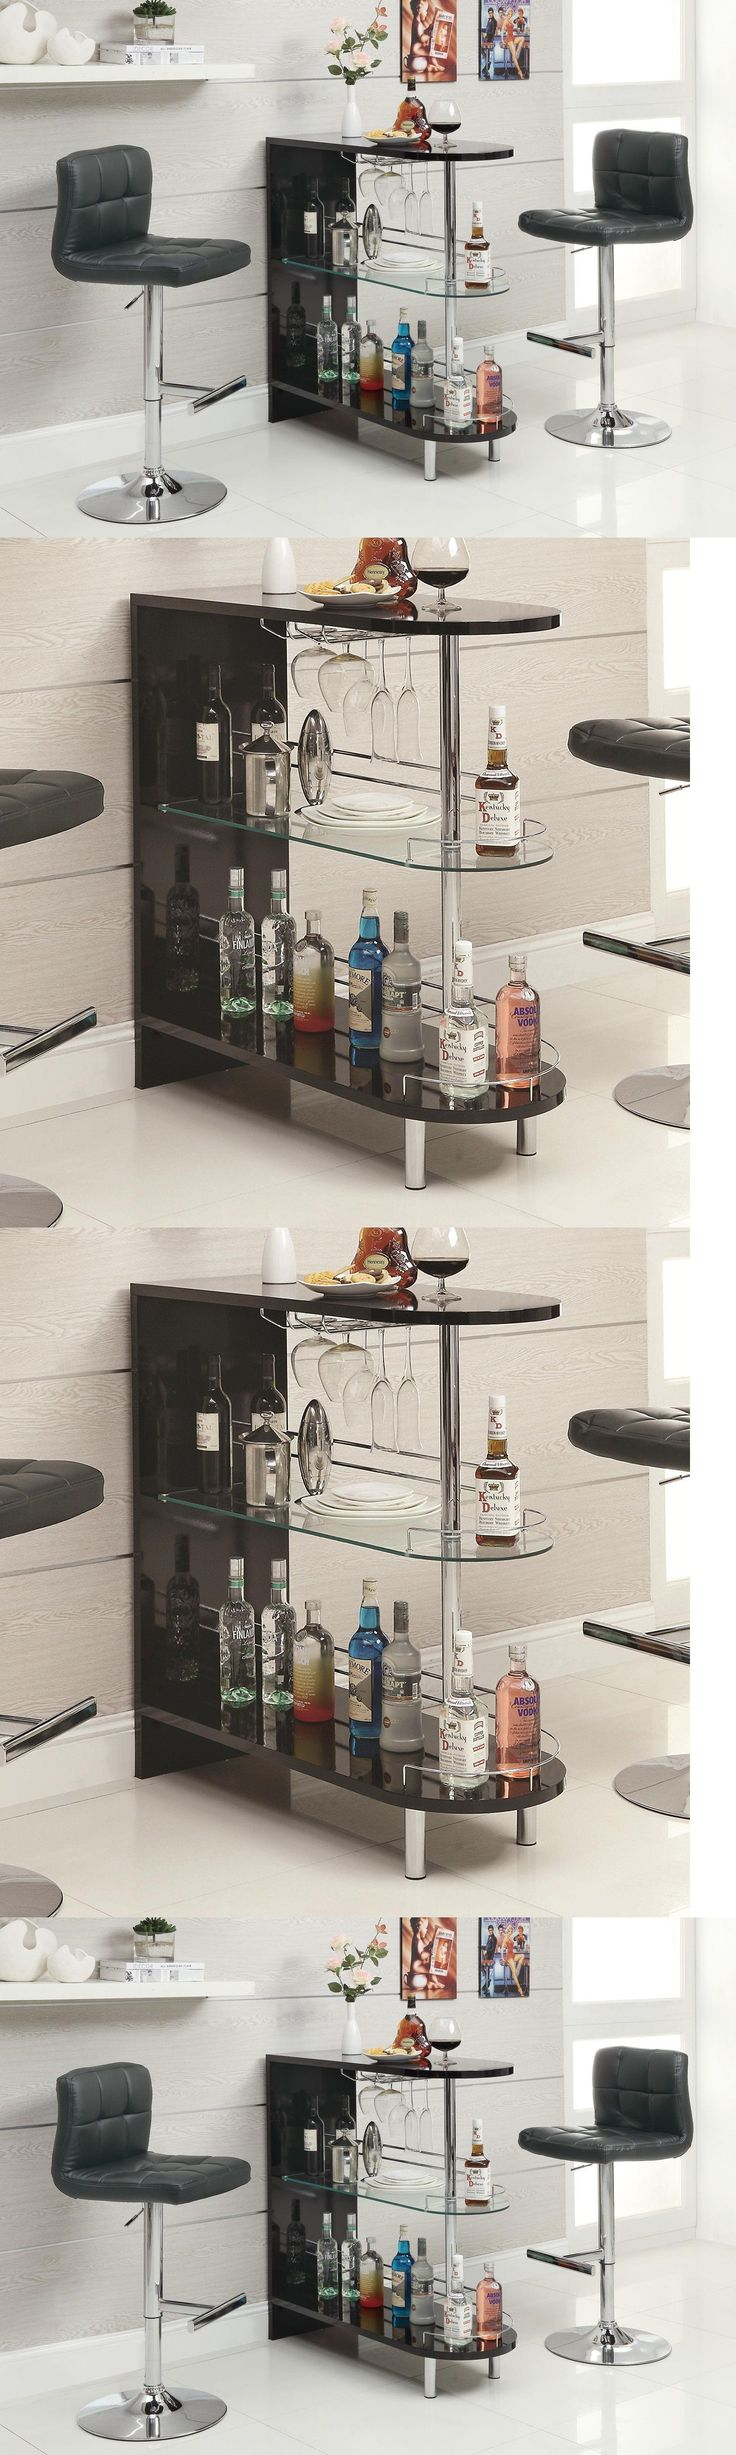 Home Pubs and Bars 115713: Pub Table Set Modern Bar Unit Shelf Wine Glass Mini Furniture Liquor Cabinet -> BUY IT NOW ONLY: $174.96 on eBay!